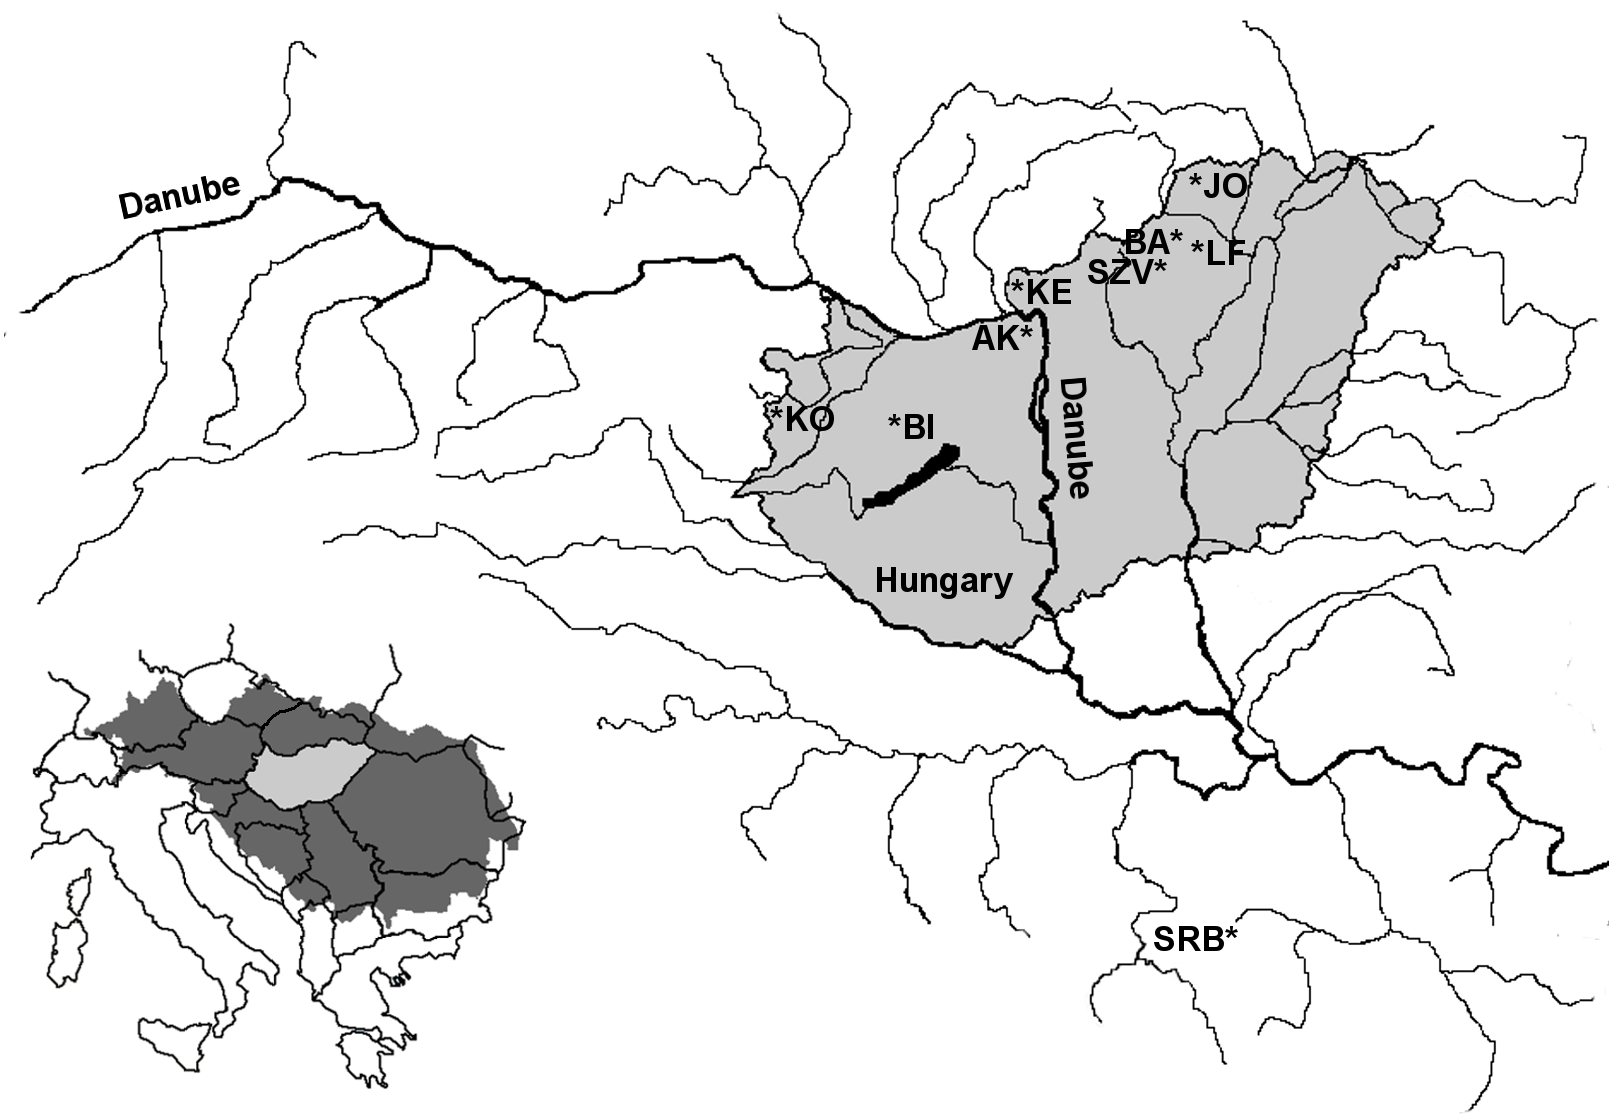 the genetic status of the hungarian brown trout populations 74 Monte Carlo SS download full size image